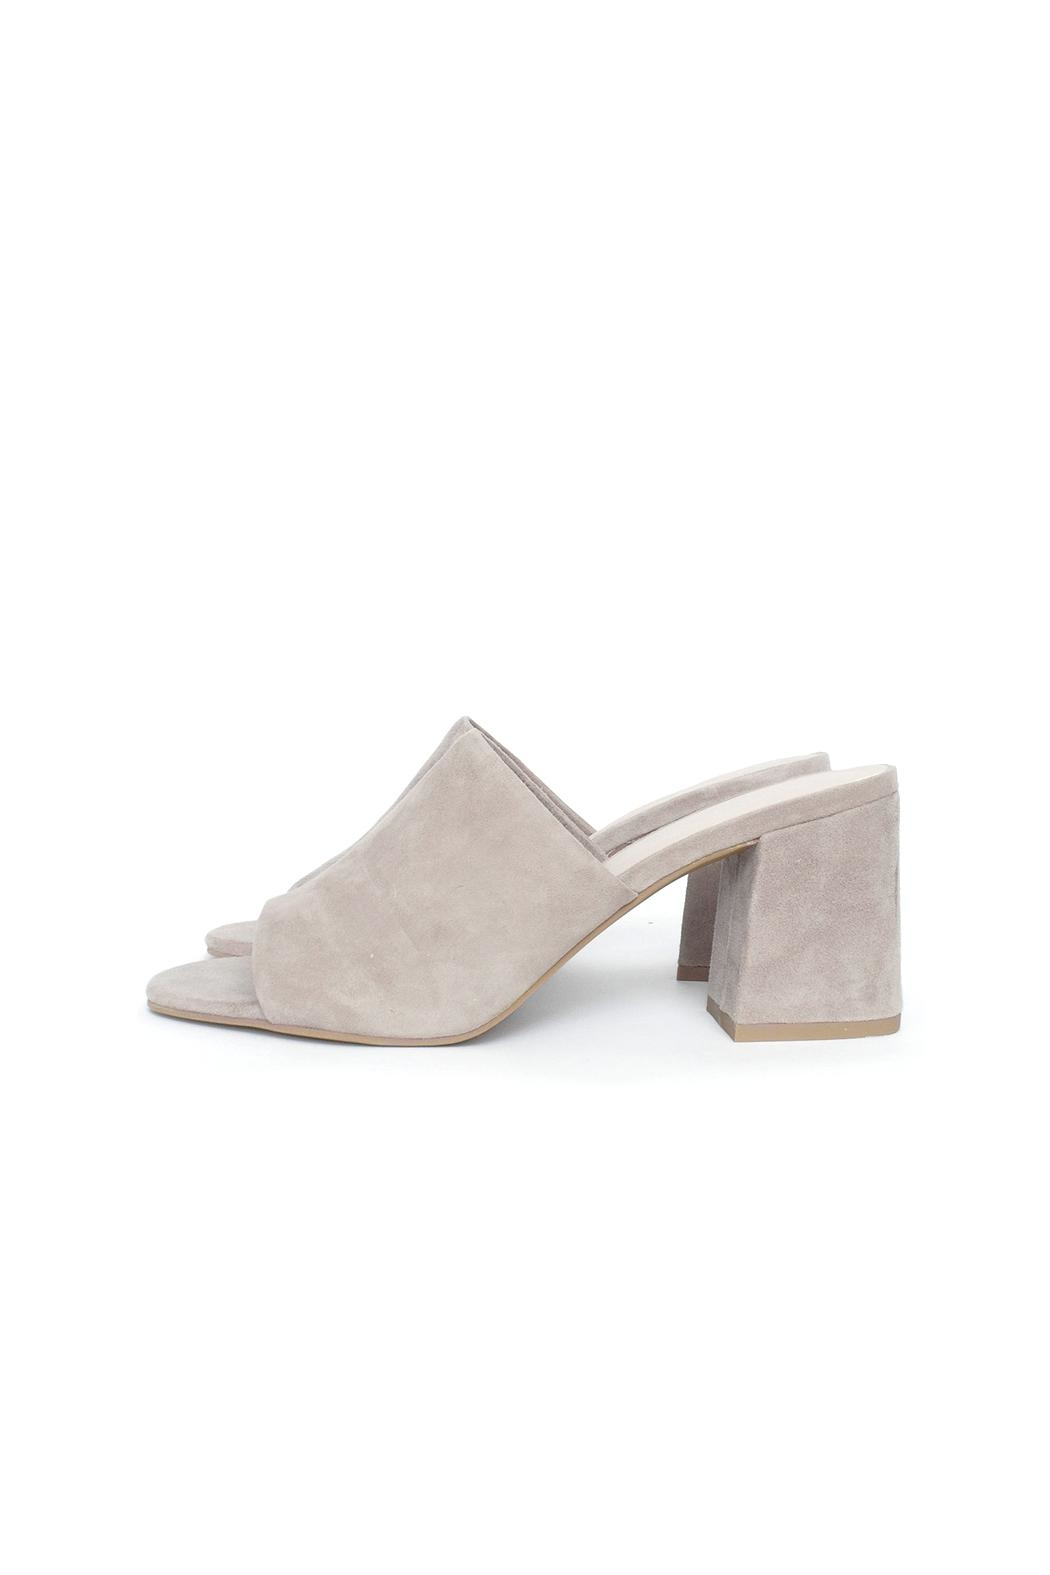 Seychelles Suede Mule Heel - Front Cropped Image